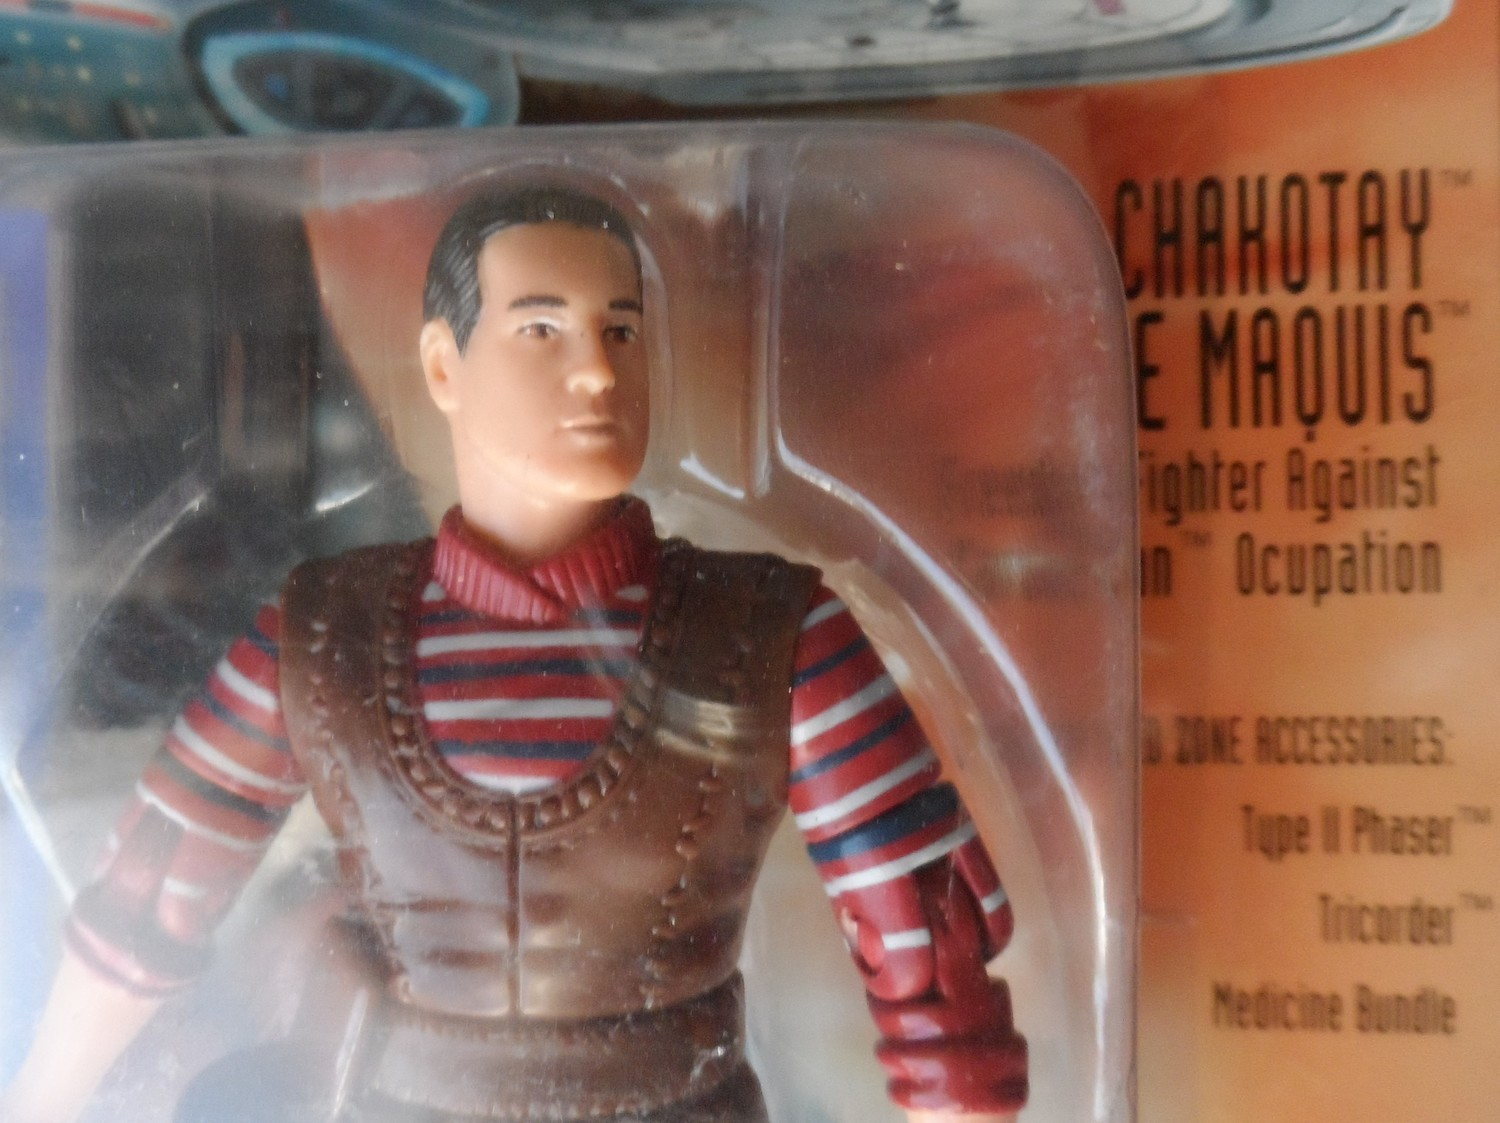 Star Trek Voyager Figure - Chakotay the Maquis